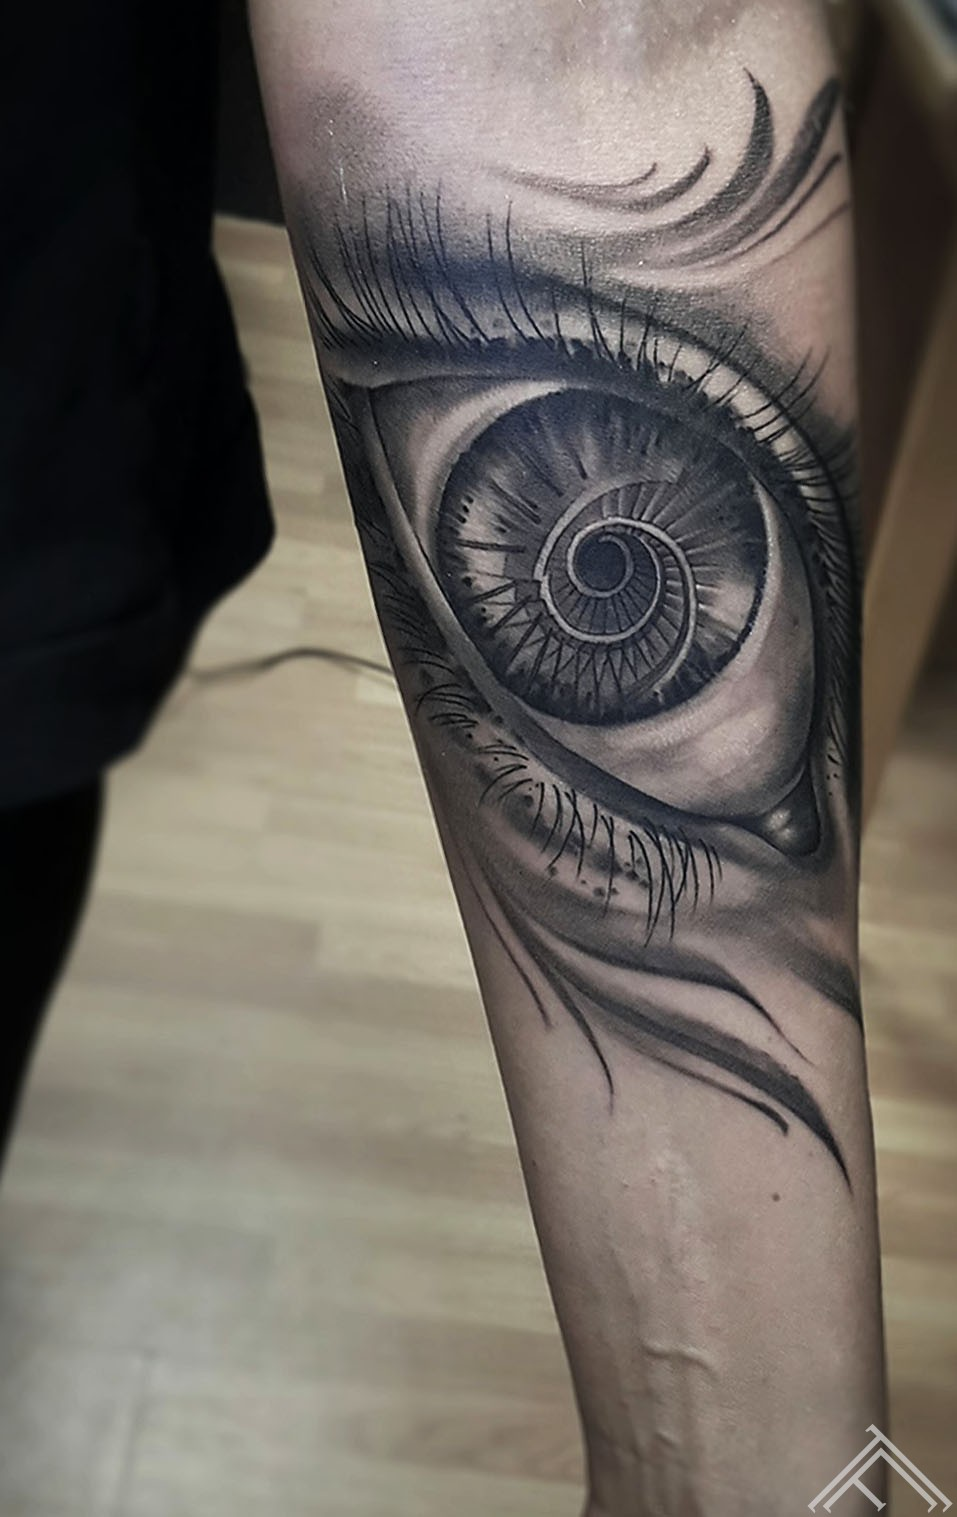 acs-eye-tattoo-tattoofrequency-tetovejums-janissvars